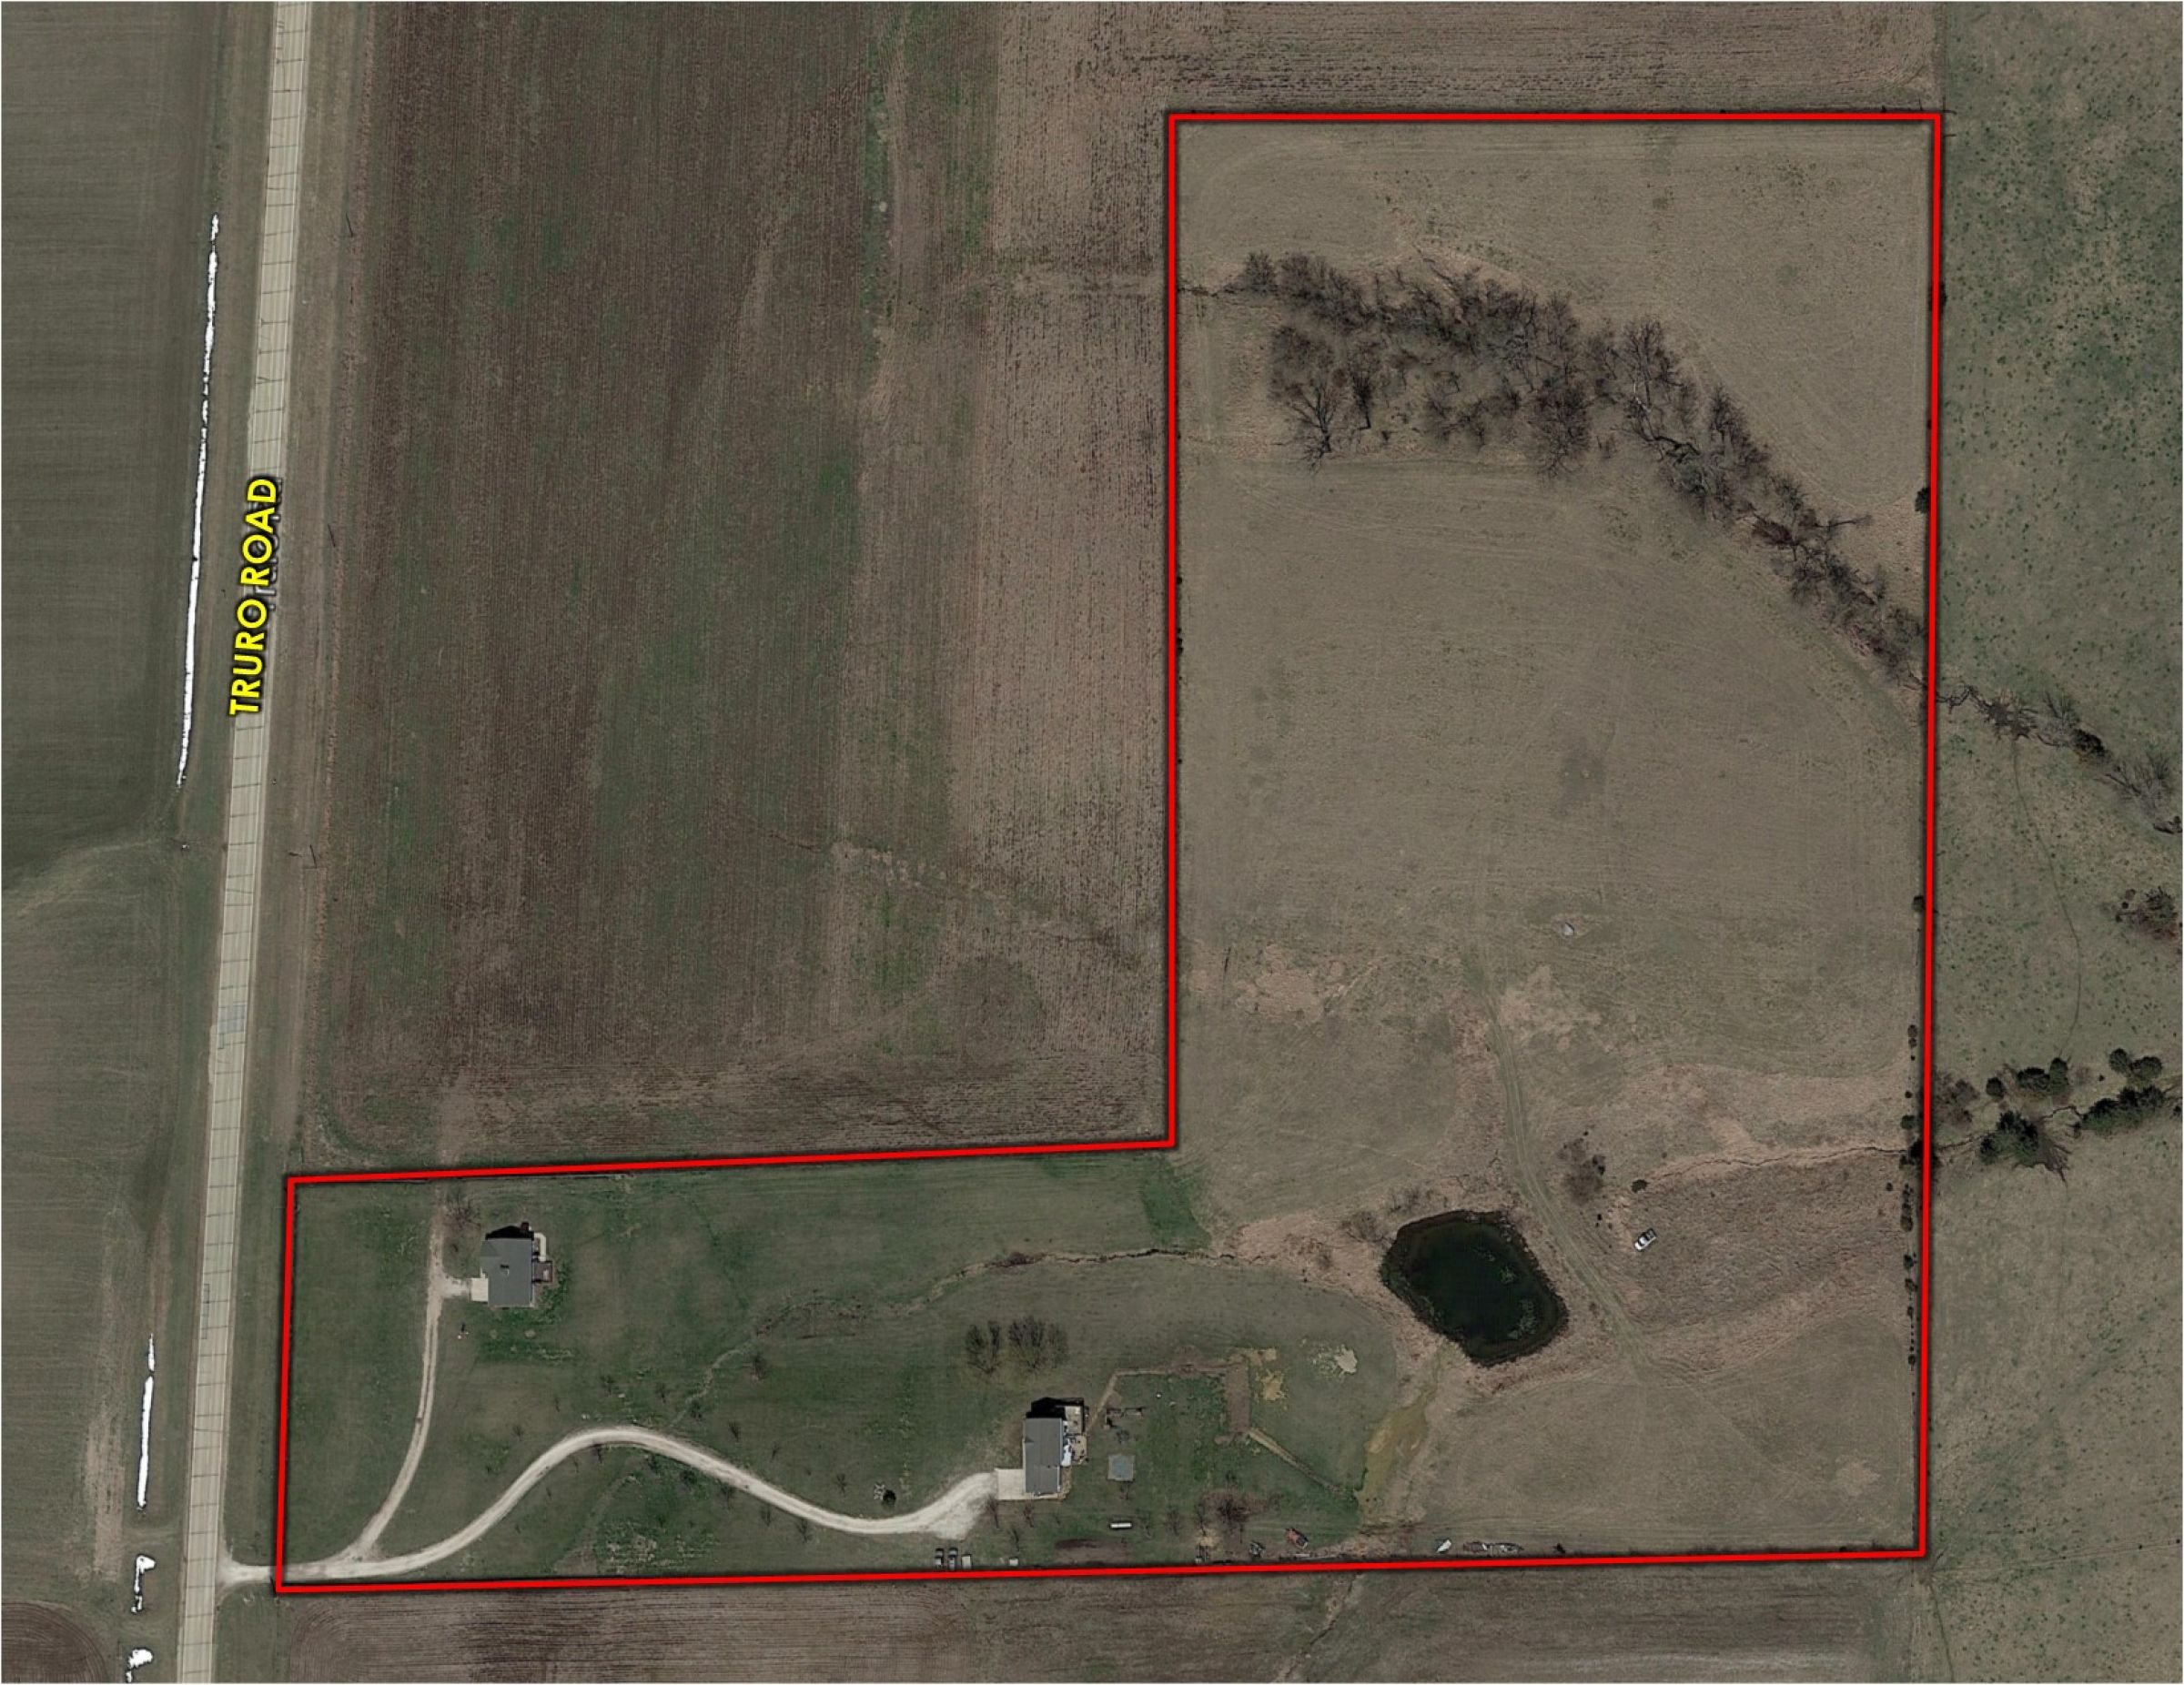 Peoples Company Land for Sale-14784-2892-and-2894-truro-rd-truro-50257